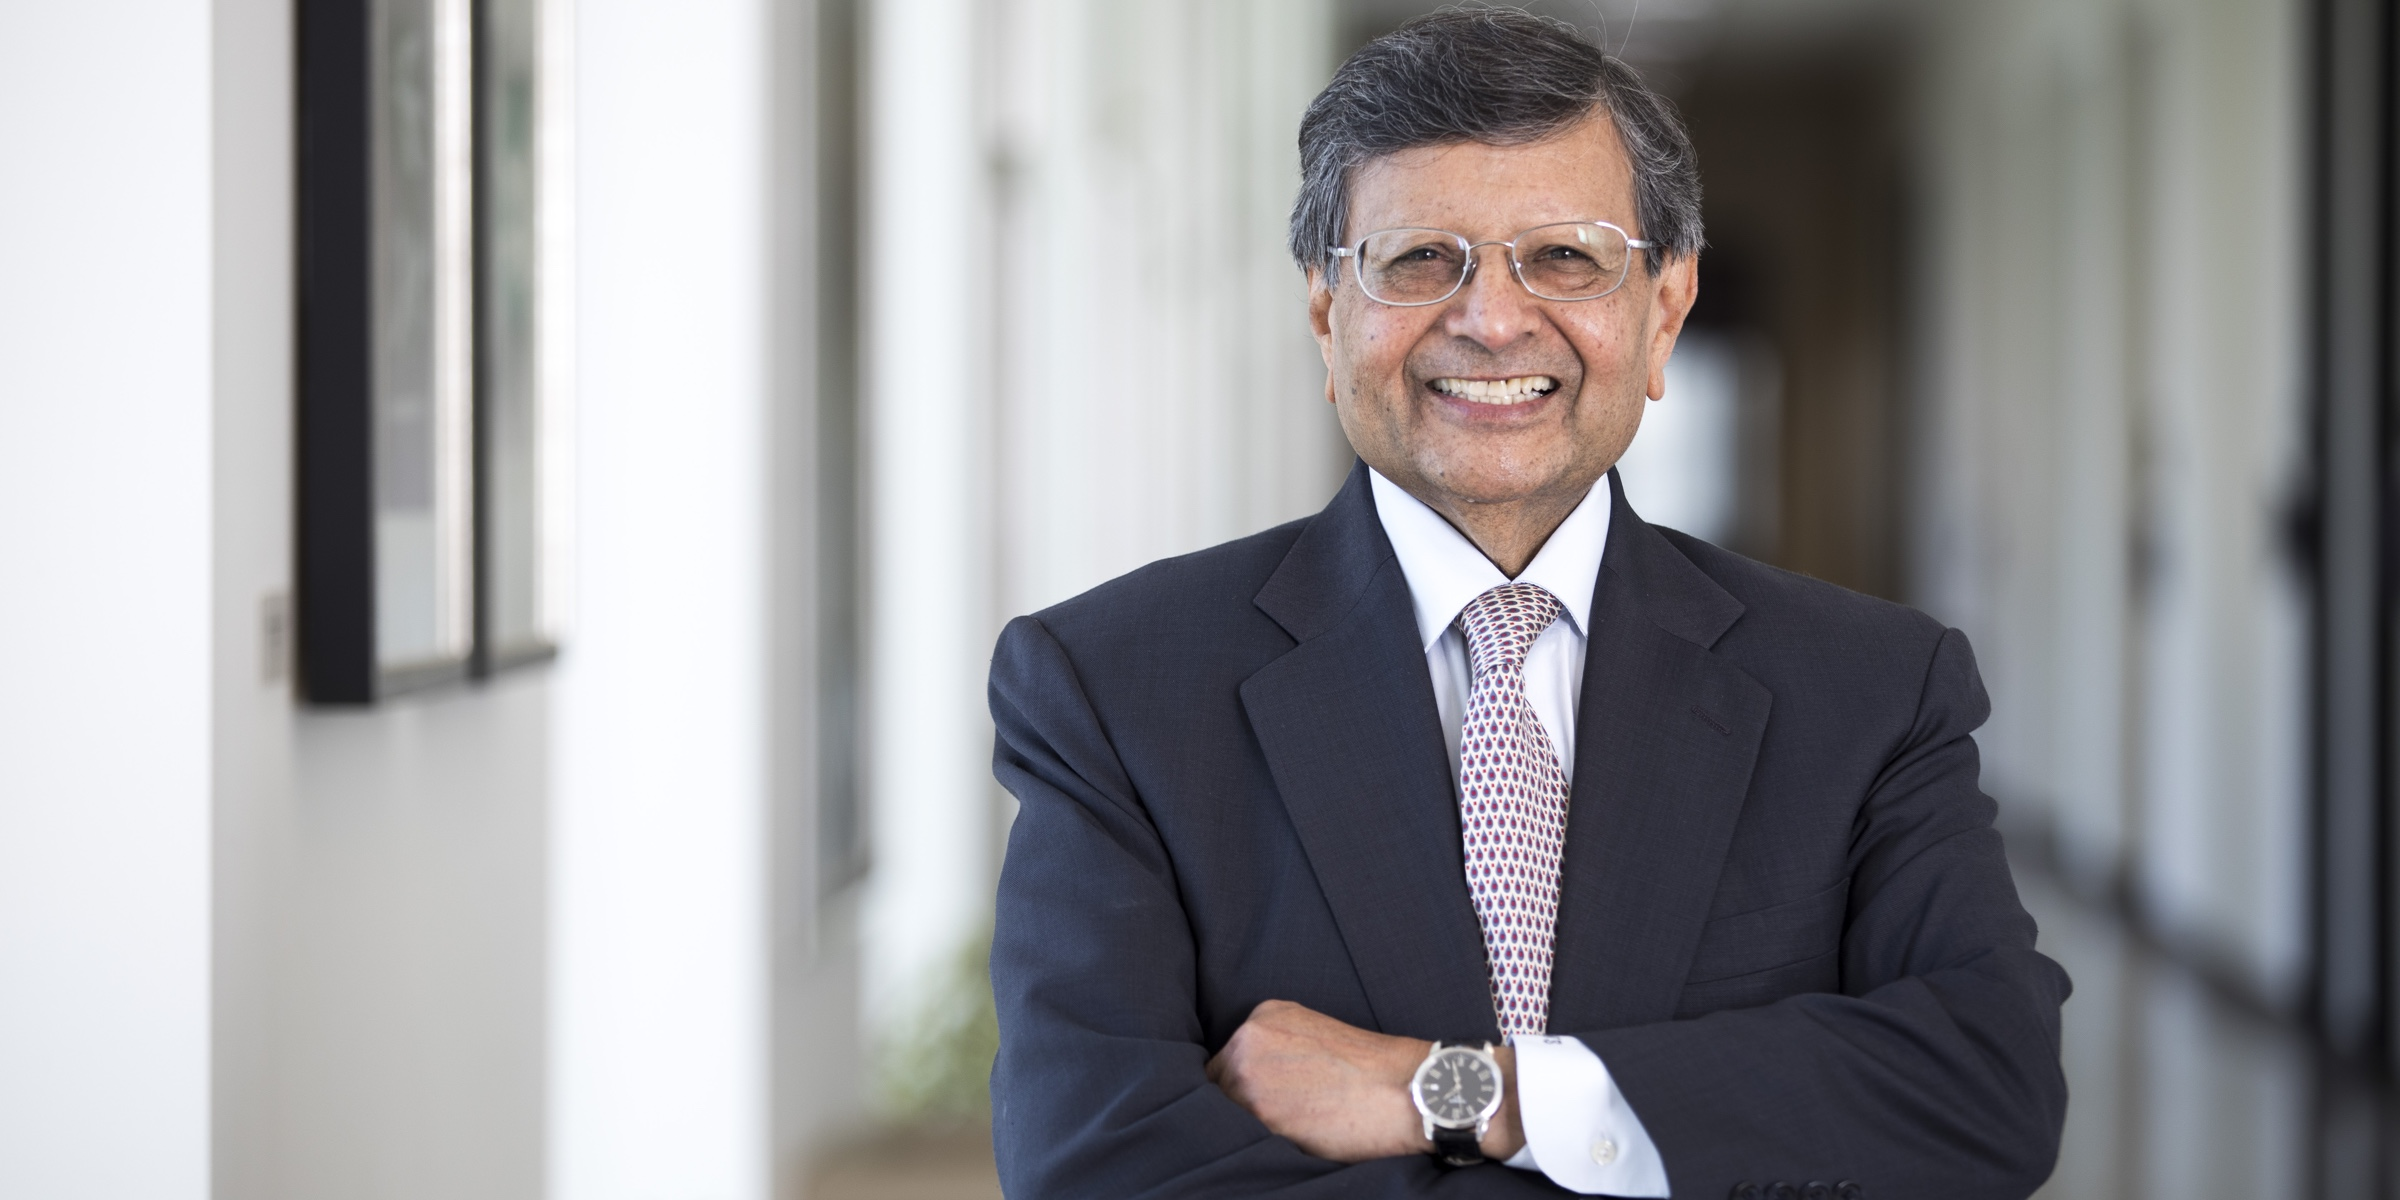 Dr. Jagdish Sheth Awarded the Padma Bhushan Award by the Government of India